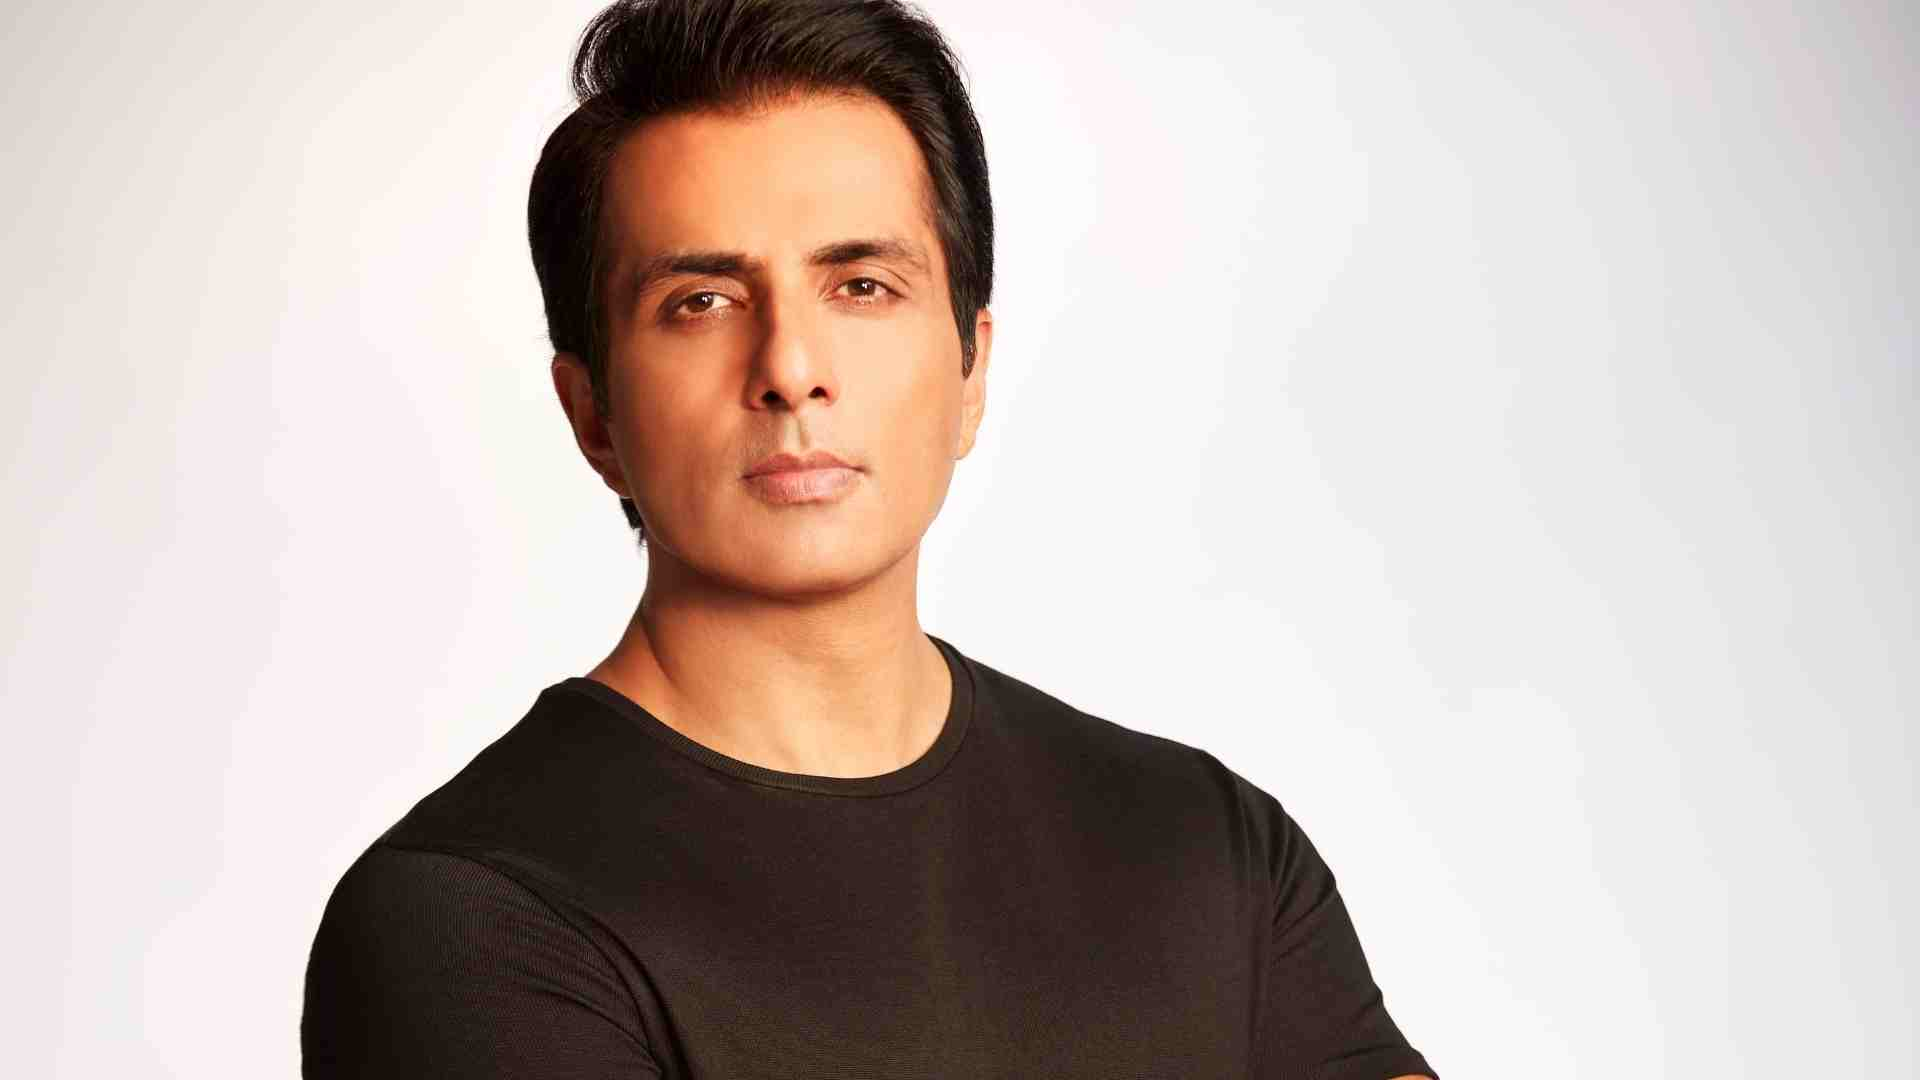 Sonu Sood joins hands with Spice Money to digitally empower 1 crore rural entrepreneurs - Exchange4media